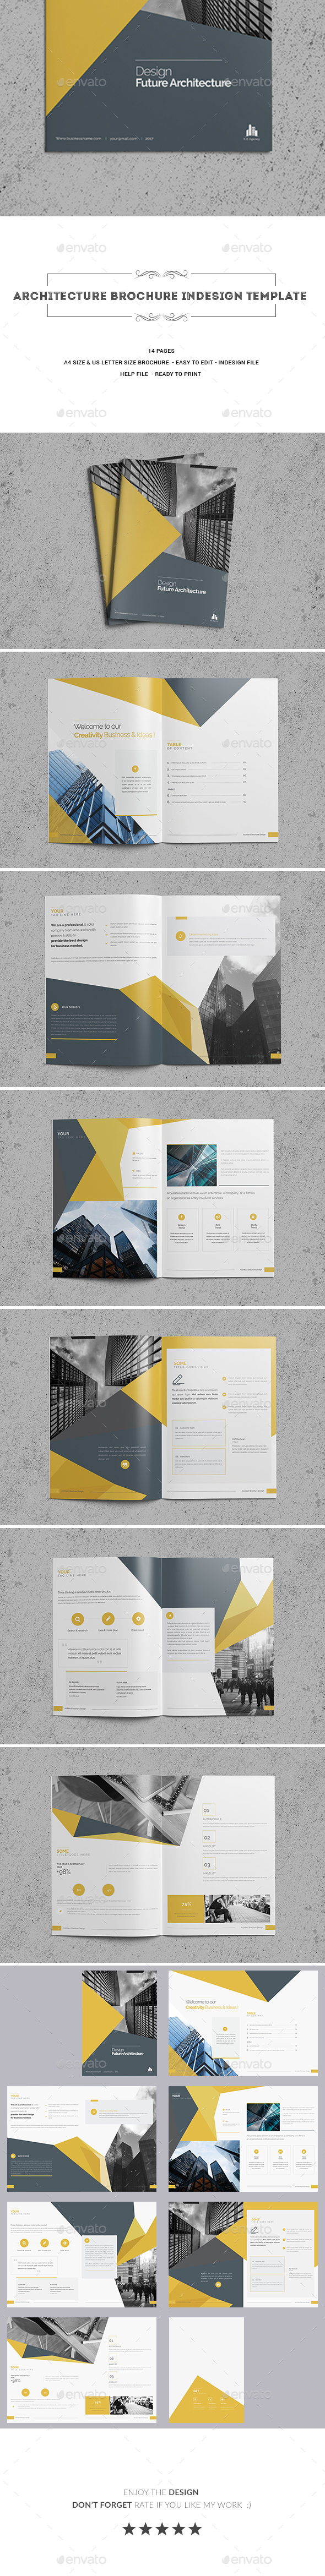 Architecture Brochure Indesign Template - Corporate Brochures